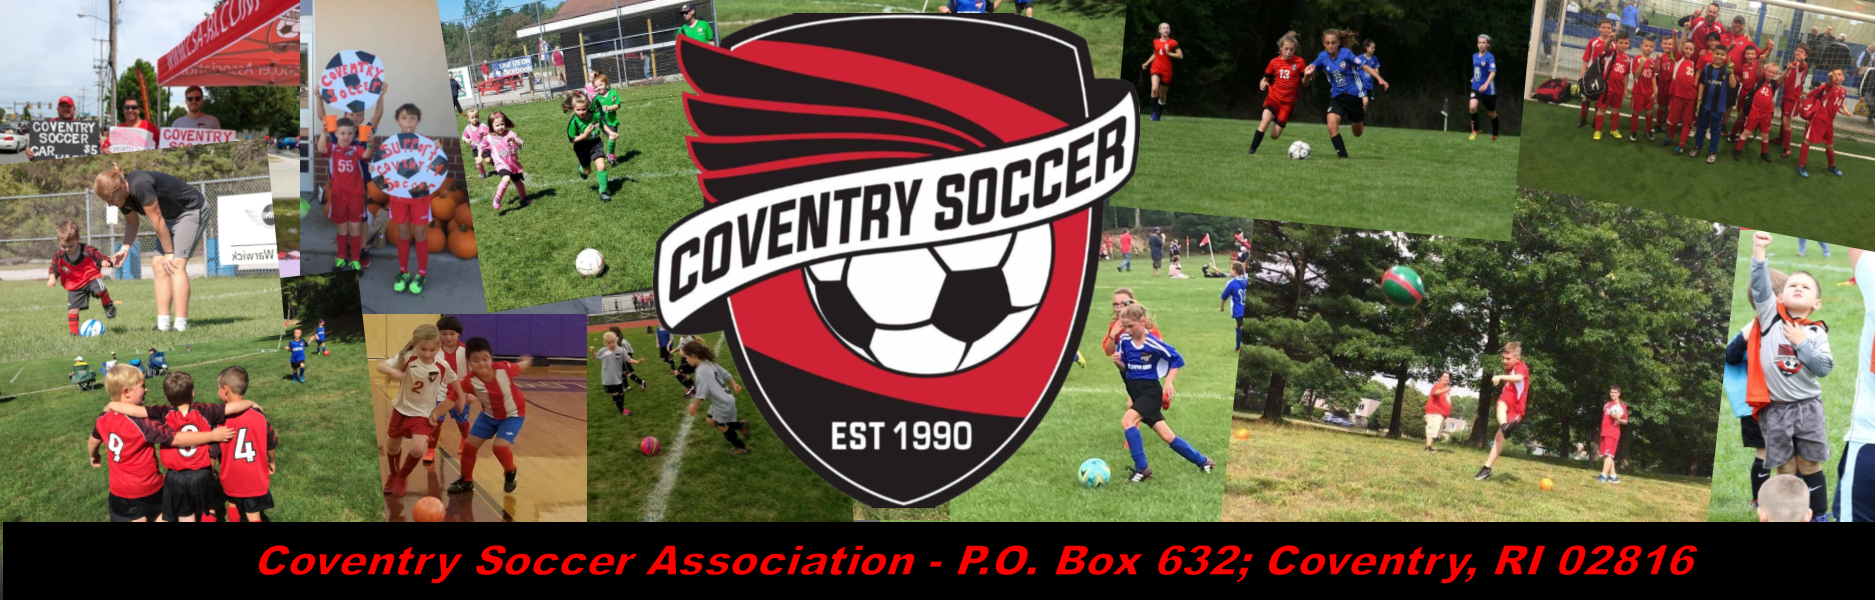 Coventry Soccer Association, Soccer, Goal, Field